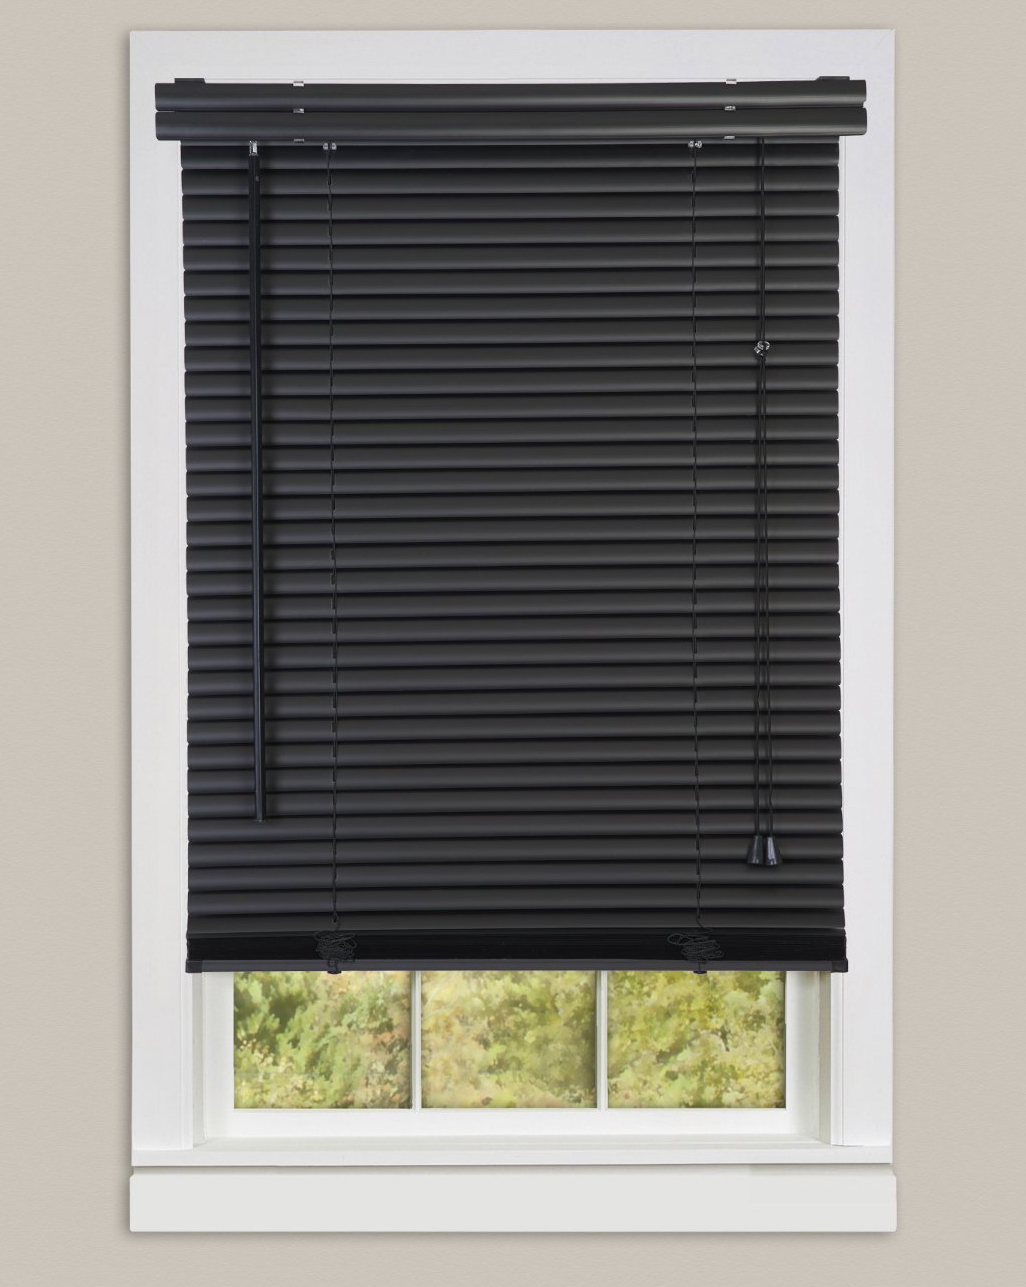 Window Blinds Mini Blinds 1 Quot Slats Black Venetian Vinyl